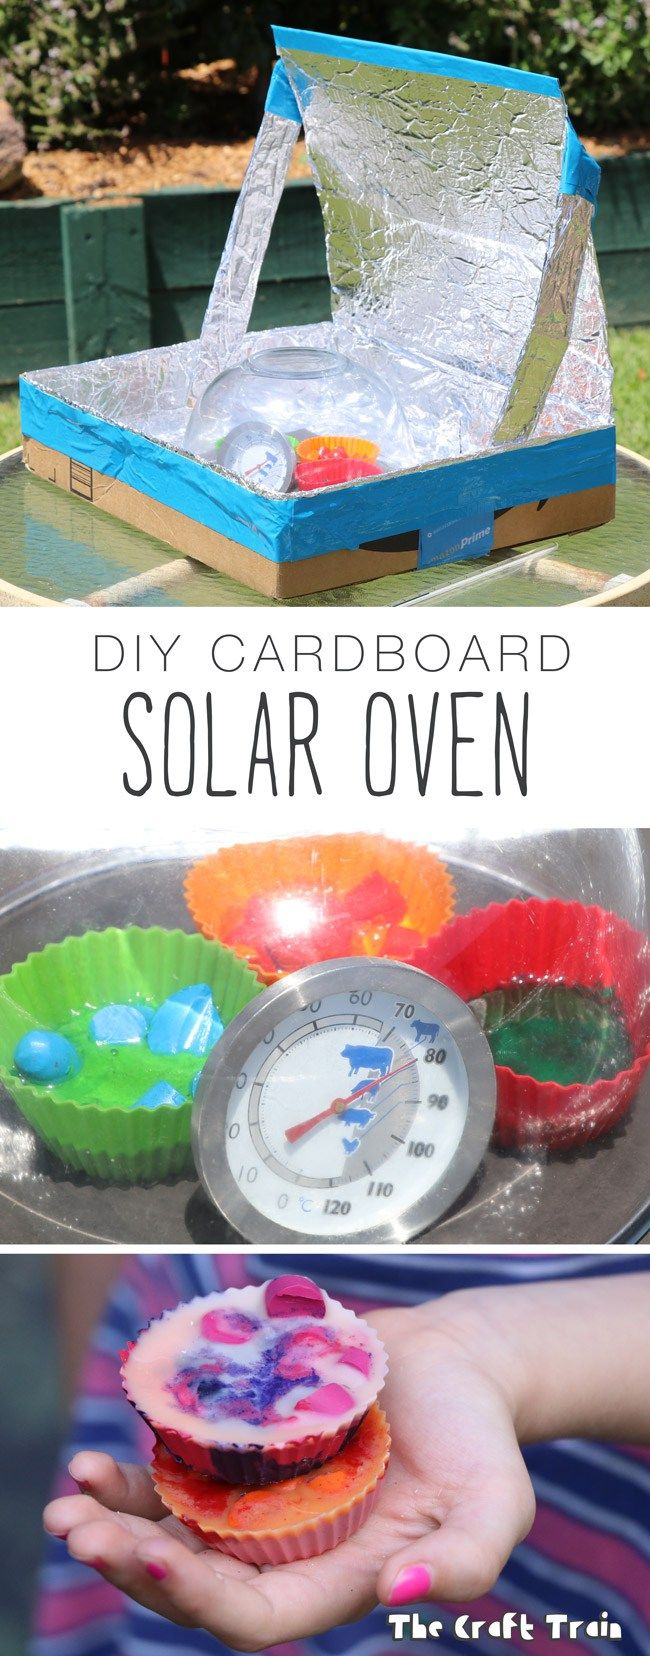 Best 25+ Sustainability kids ideas on Pinterest ...